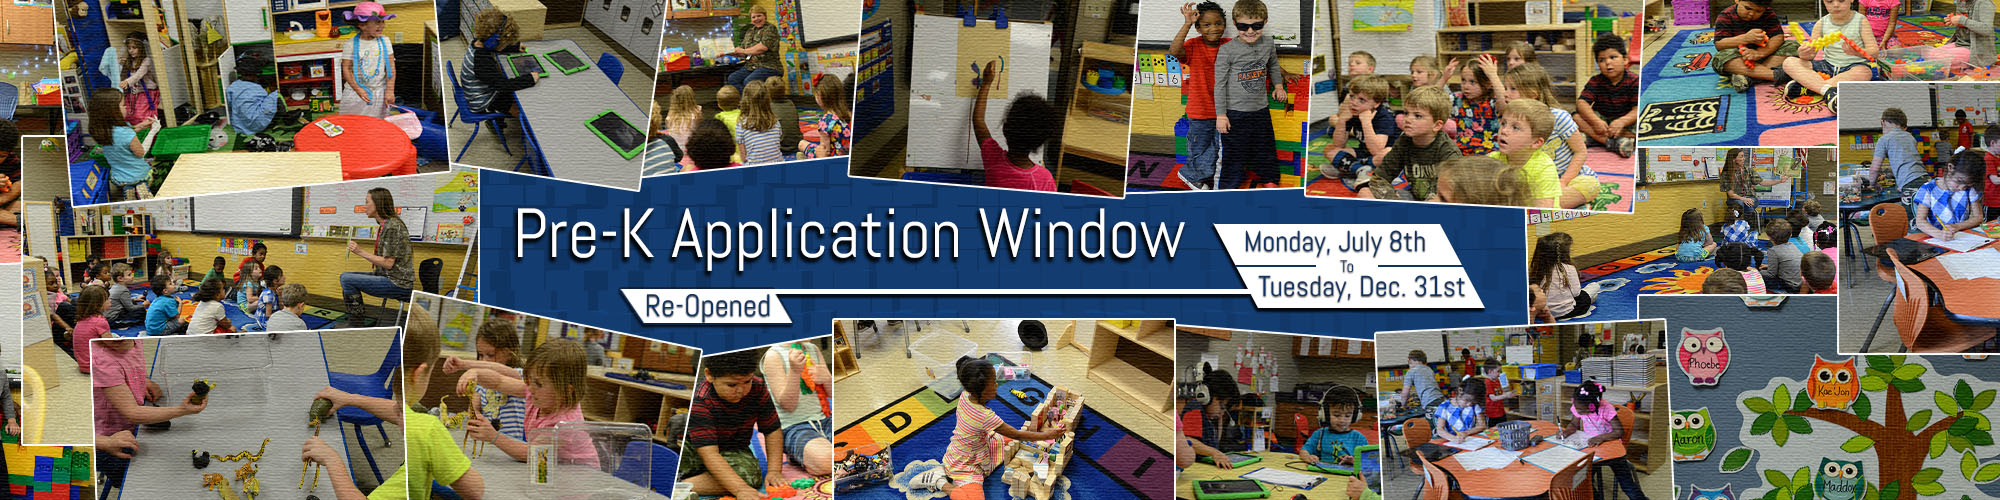 Various images of Pre-K students and teachers in the classroom, text reads Pre-K application window re-opened from Monday, July 8th to Tuesday, December 31st